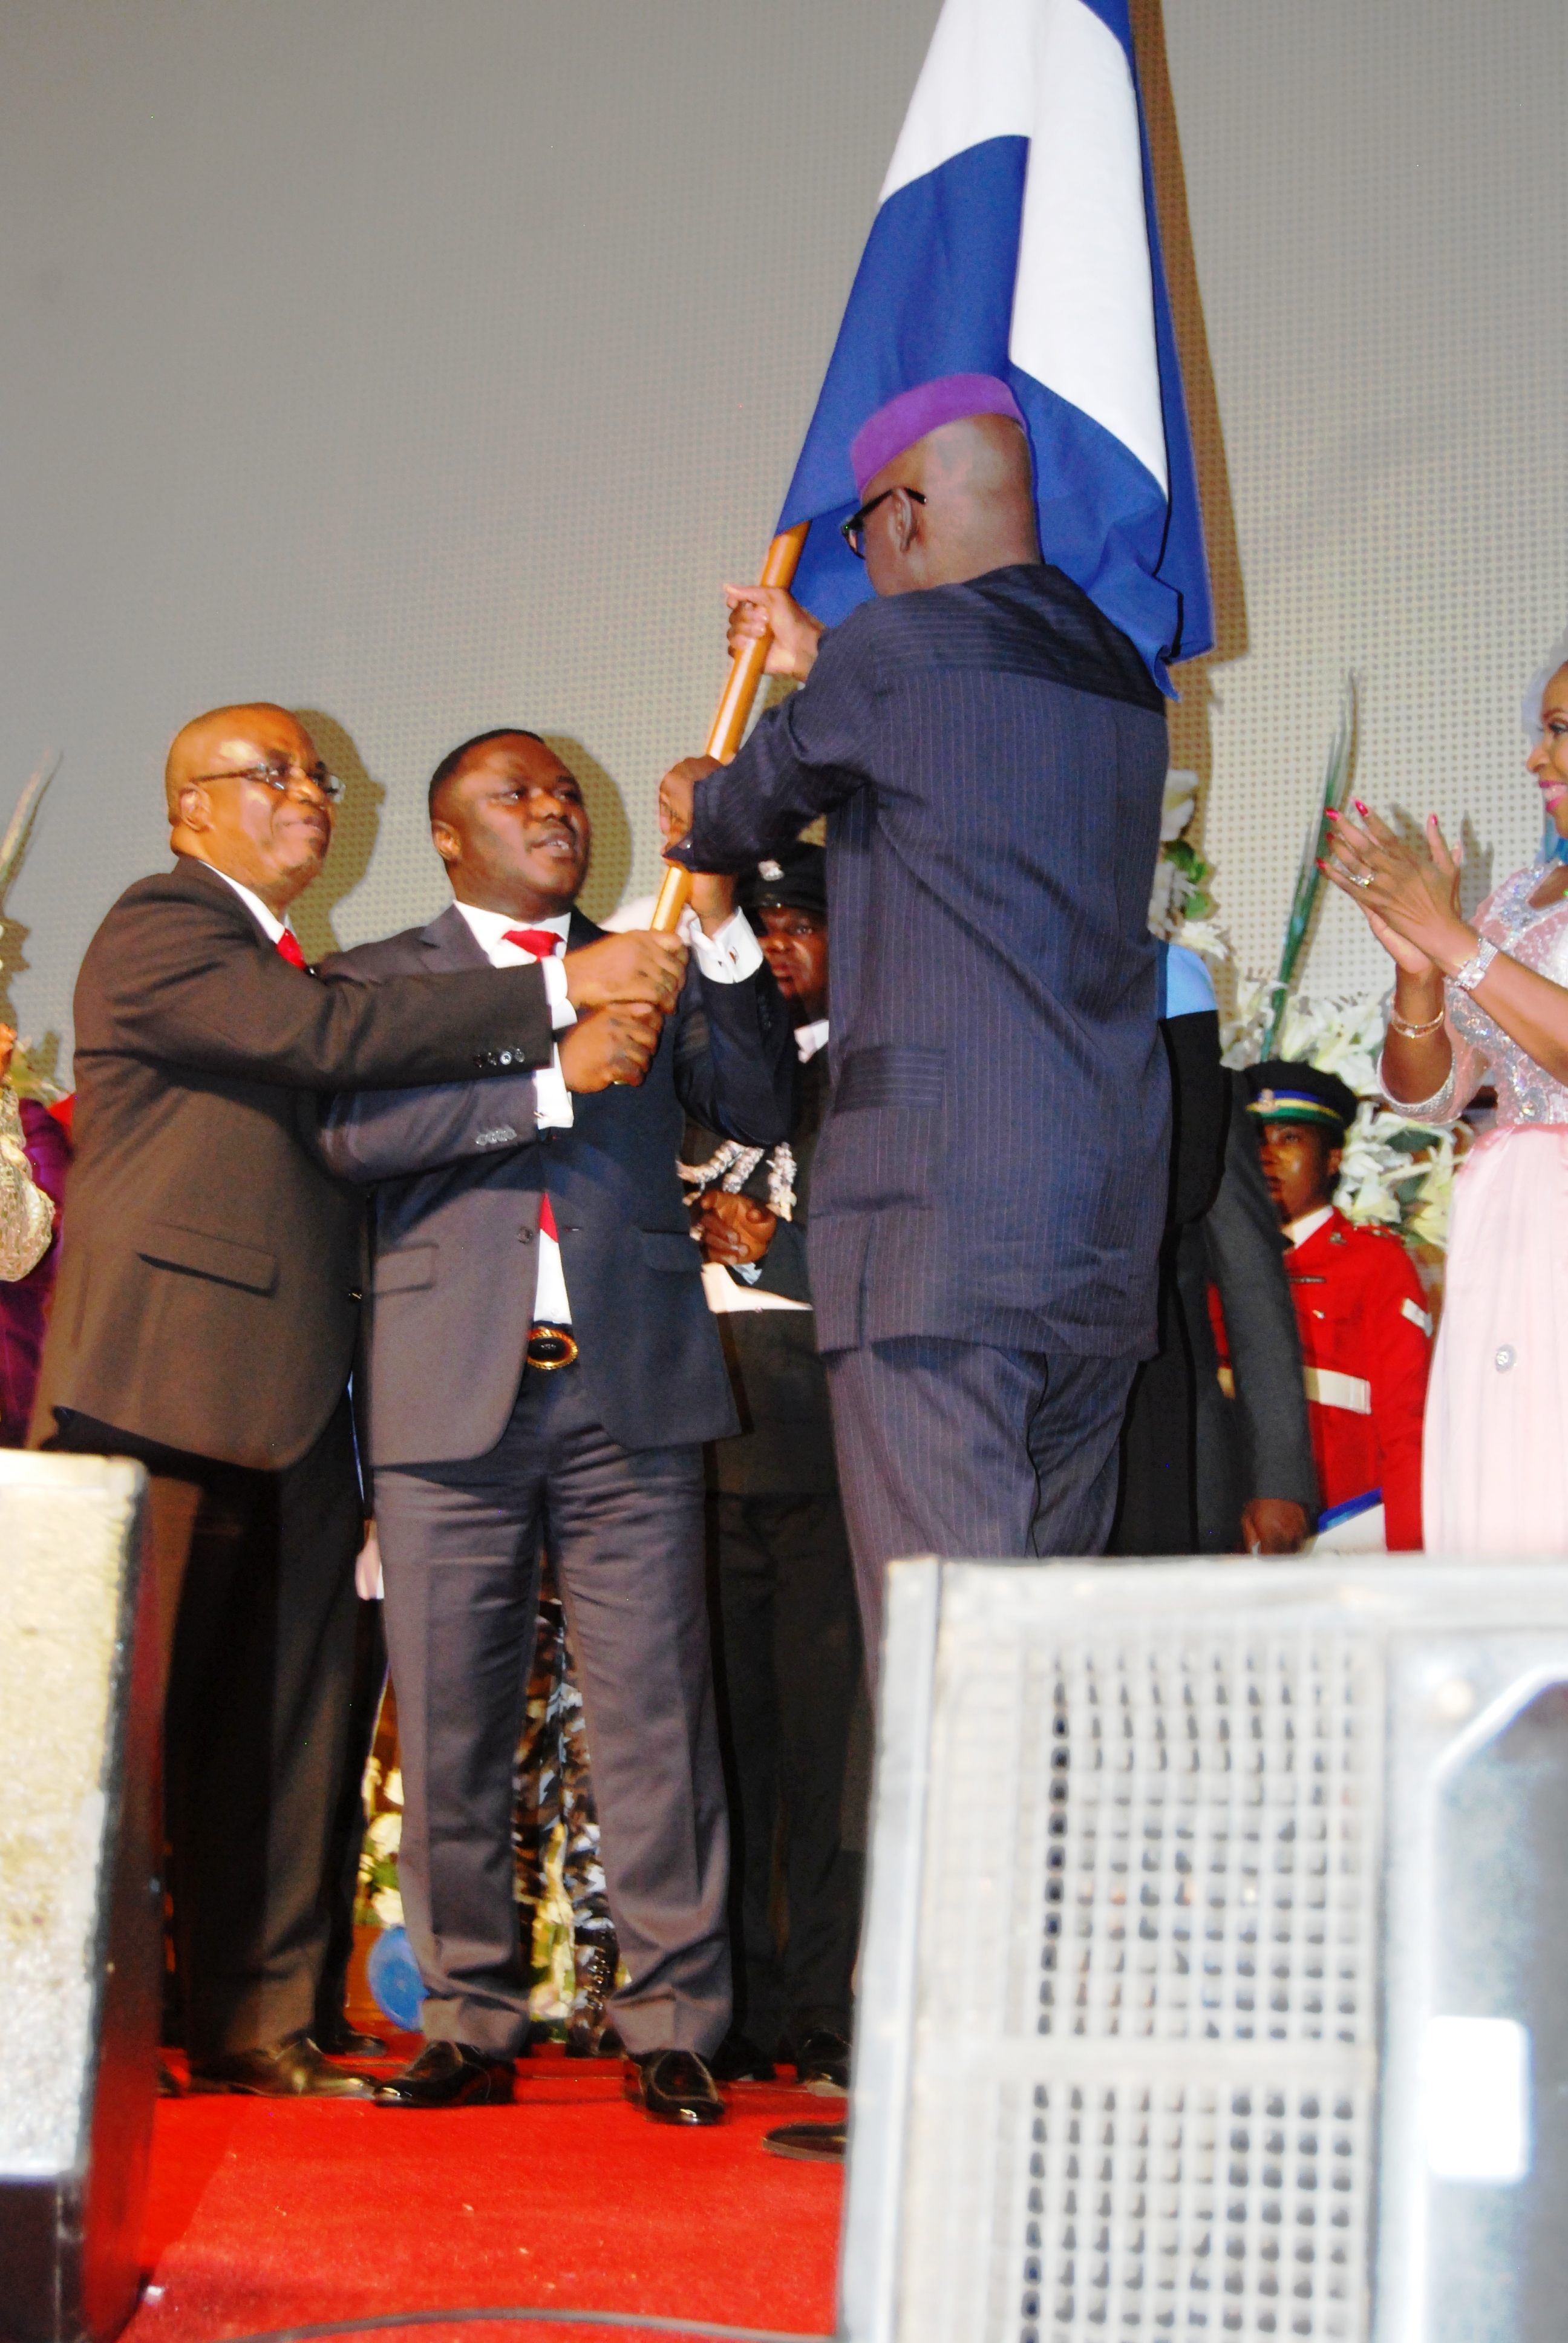 The former governor, Senator Liyel Imoke handing over the state flag to his successor, Senator (Prof) Ben Ayade aided by his deputy, Prof. Evara Esu